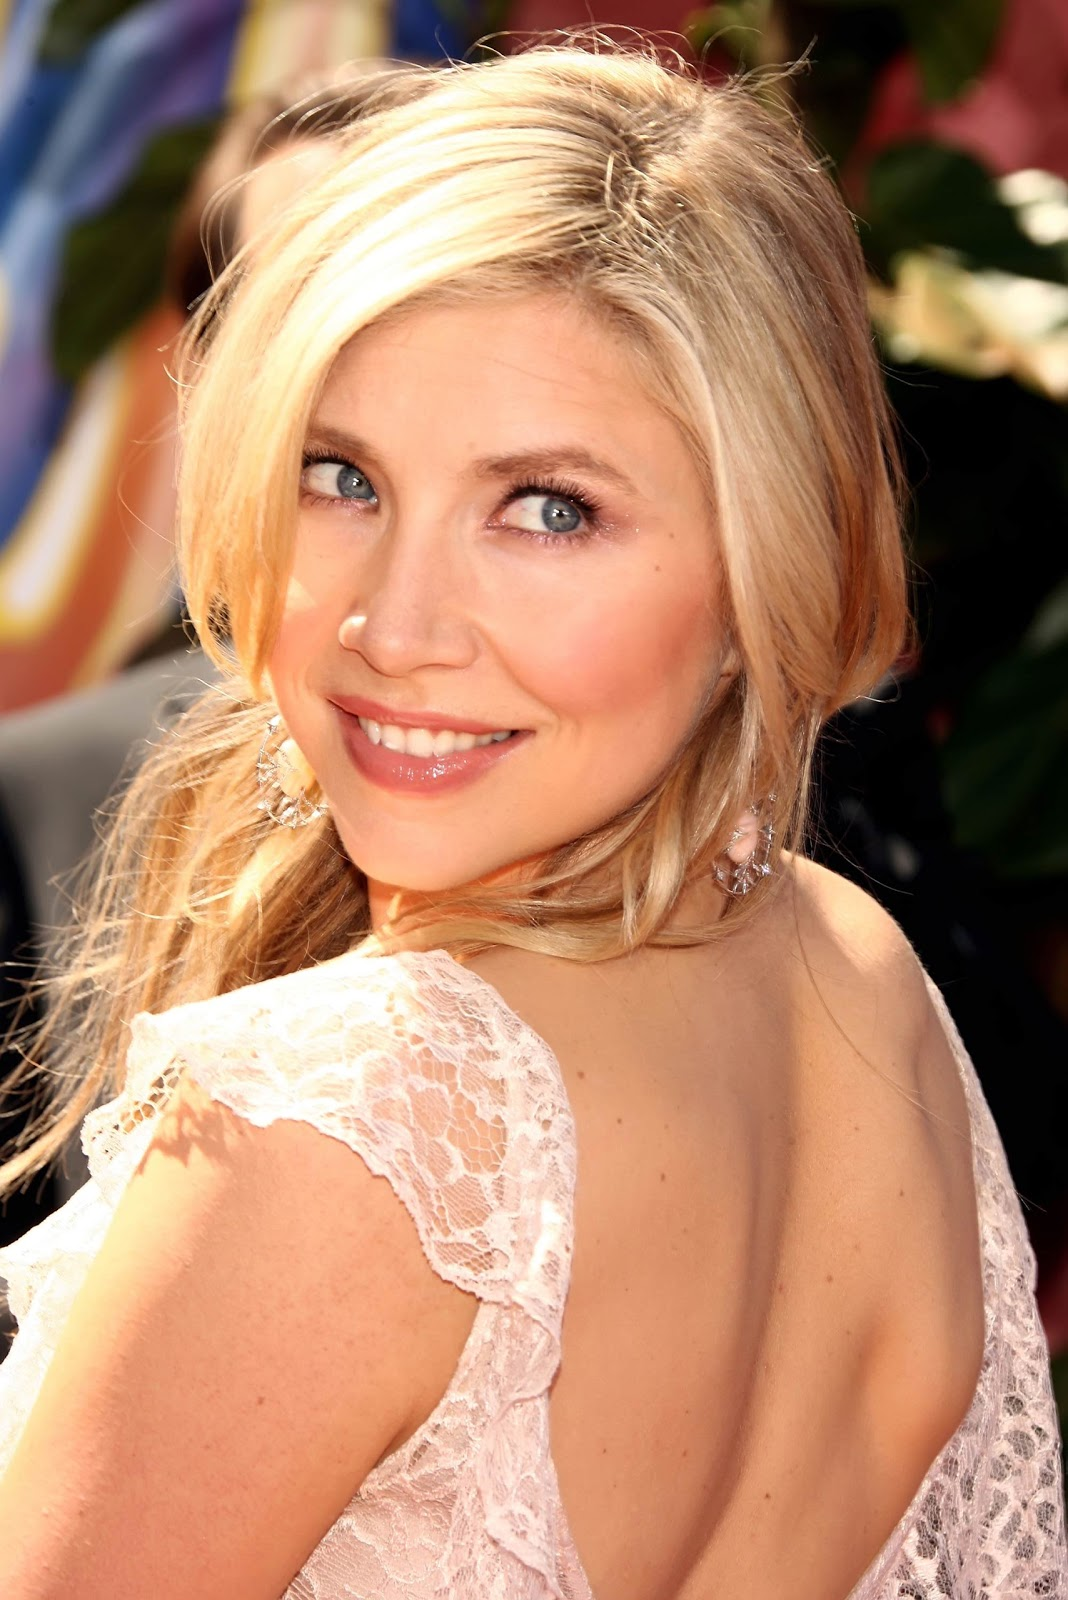 Sarah chalke chaos theory sexy lingerie 5